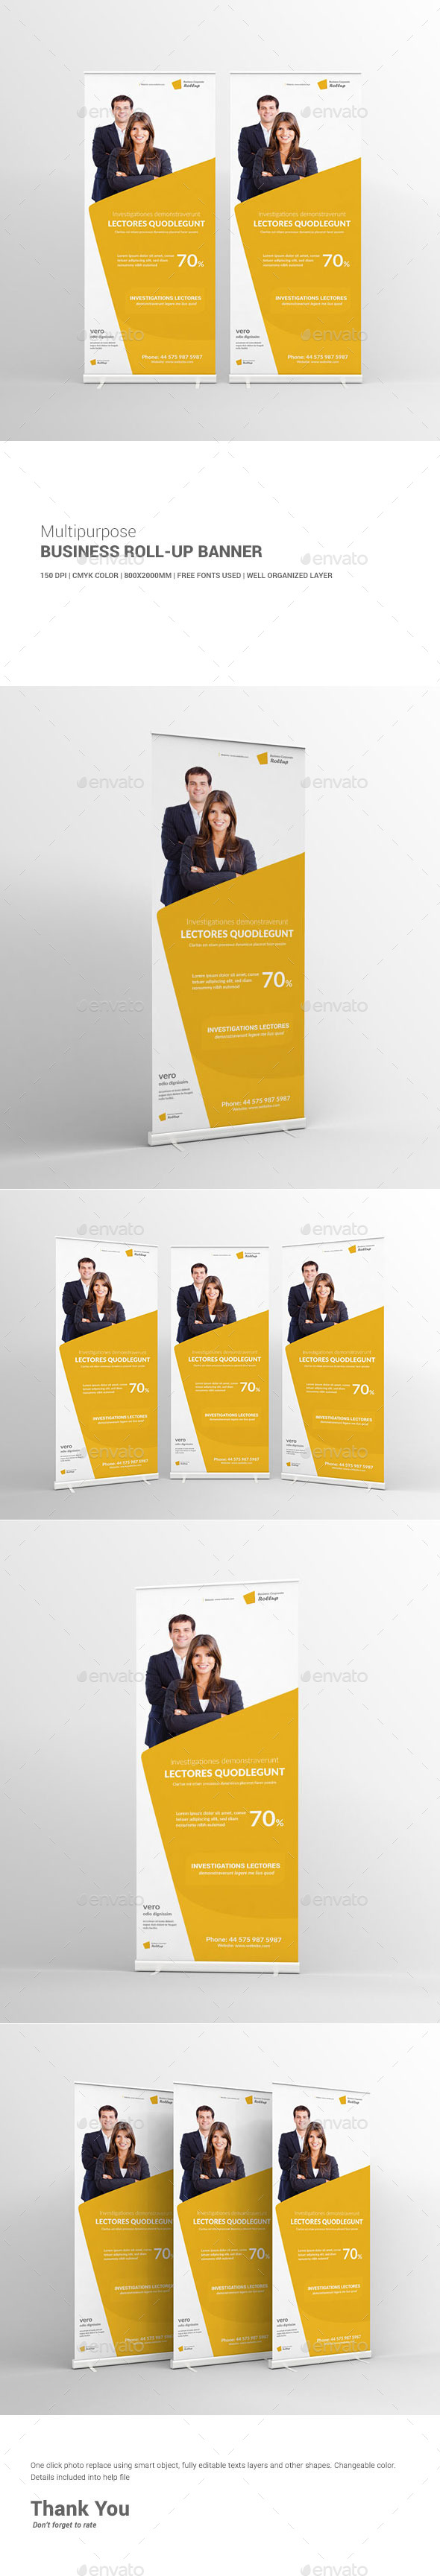 GraphicRiver Multipurpose Business Roll-Up Banner 11453069